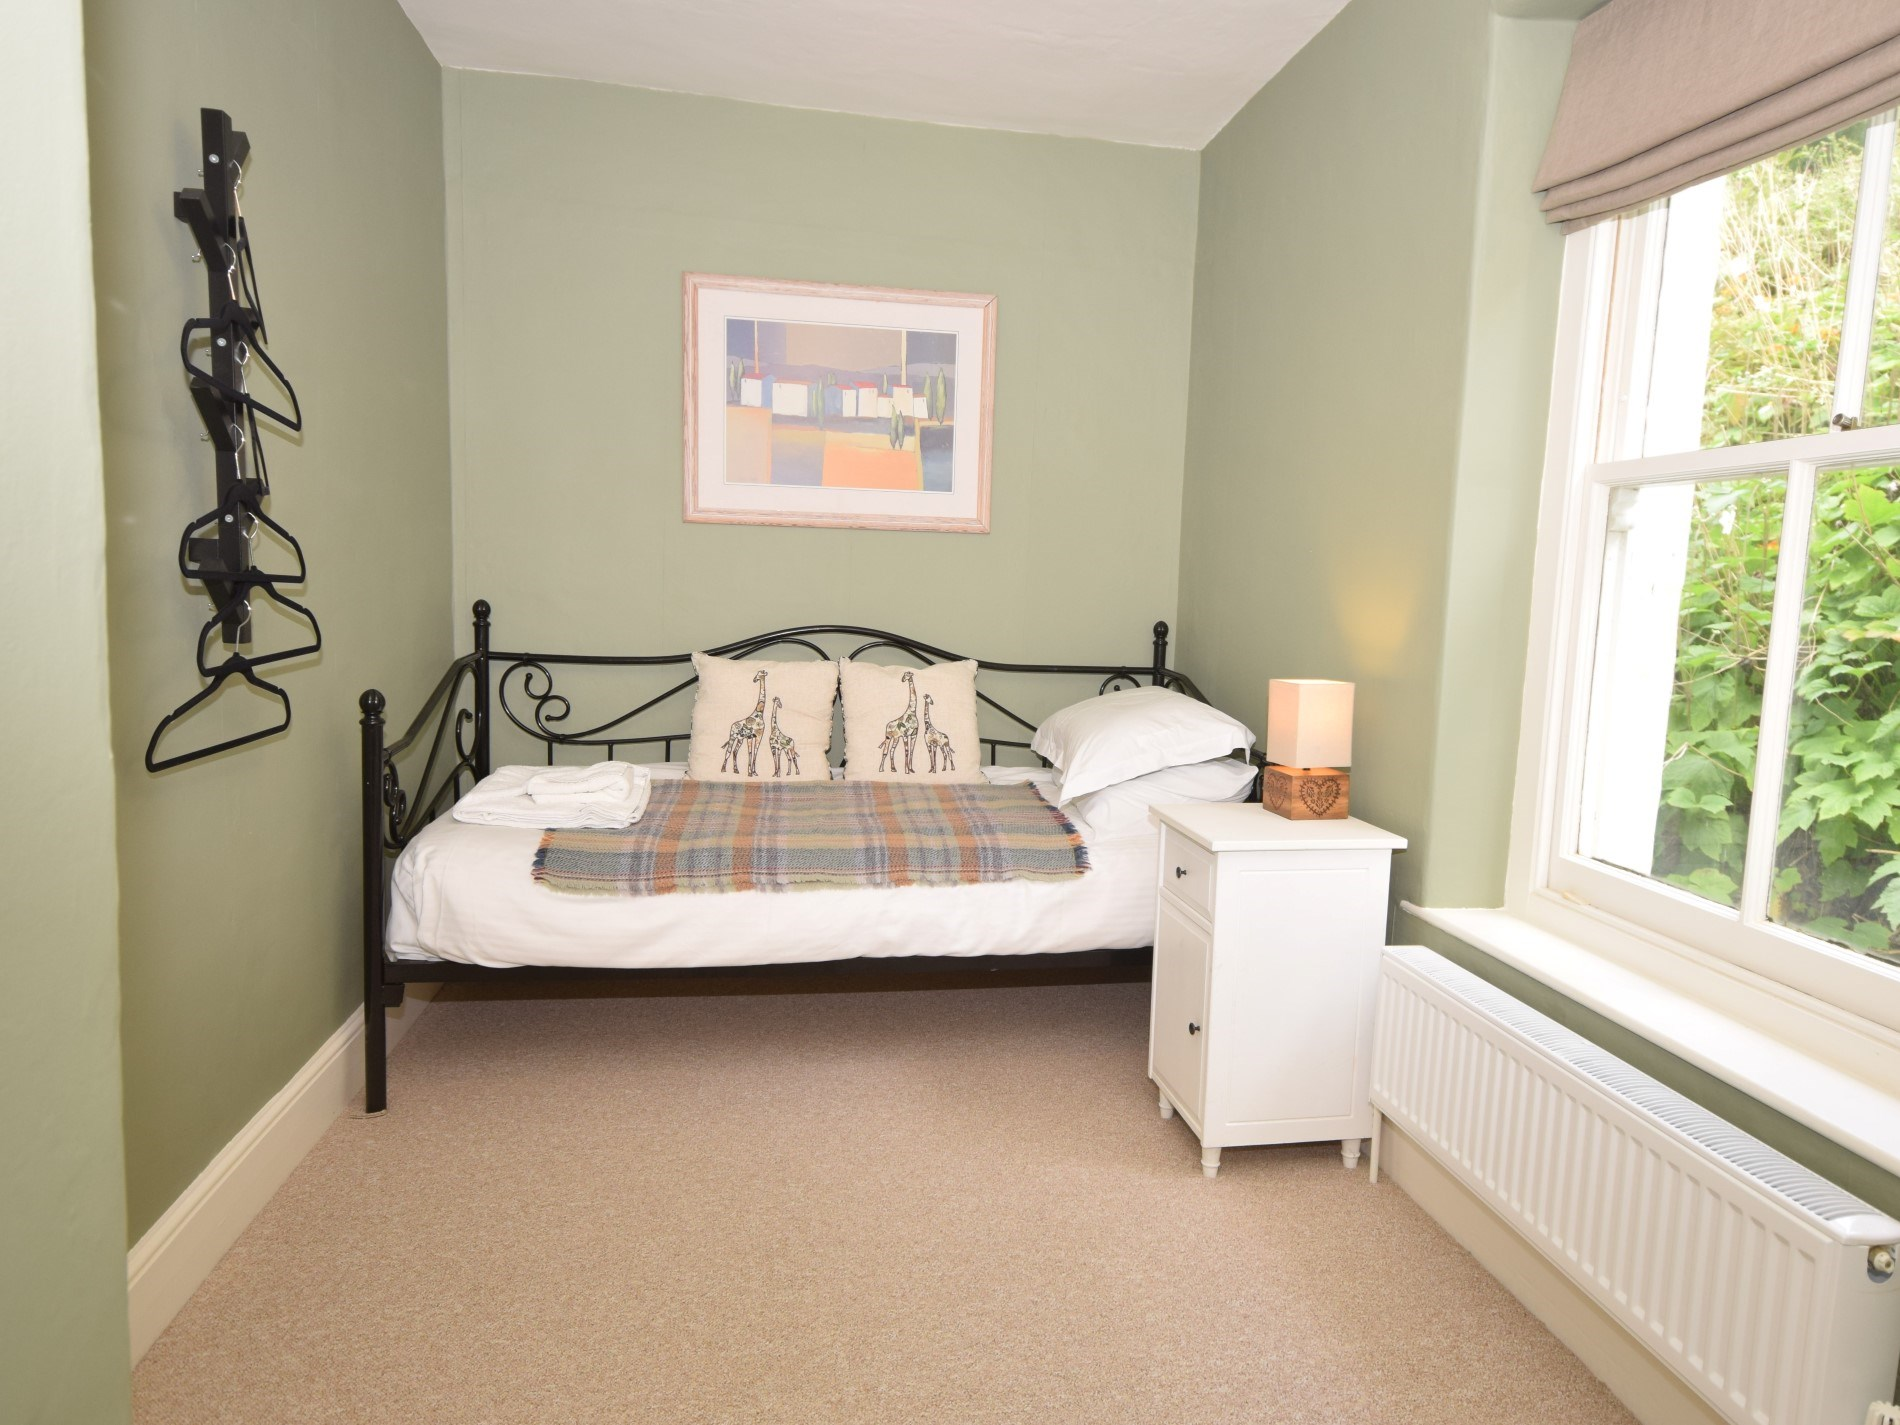 6 Bedroom Cottage in Ilfracombe, Devon